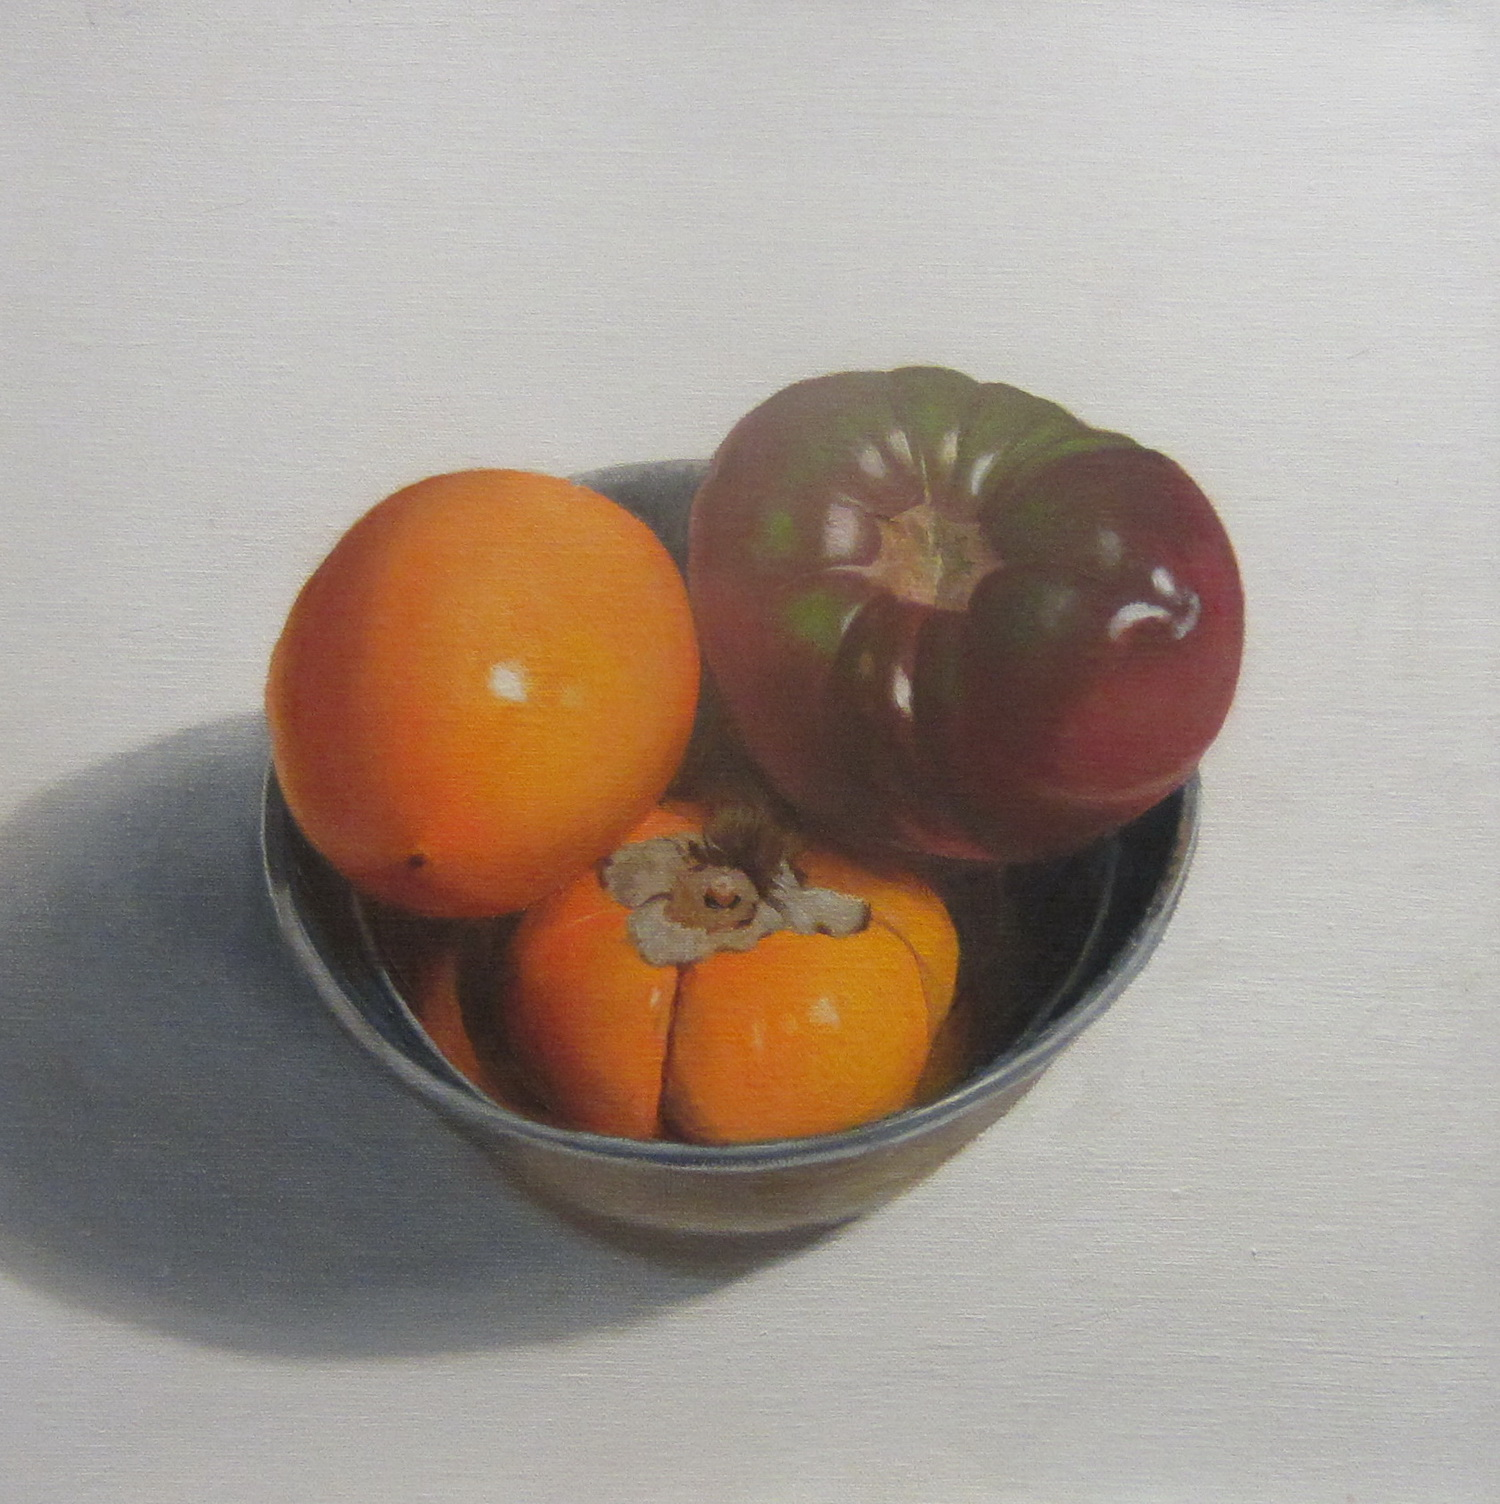 Persimmons and Heirloom Tomato